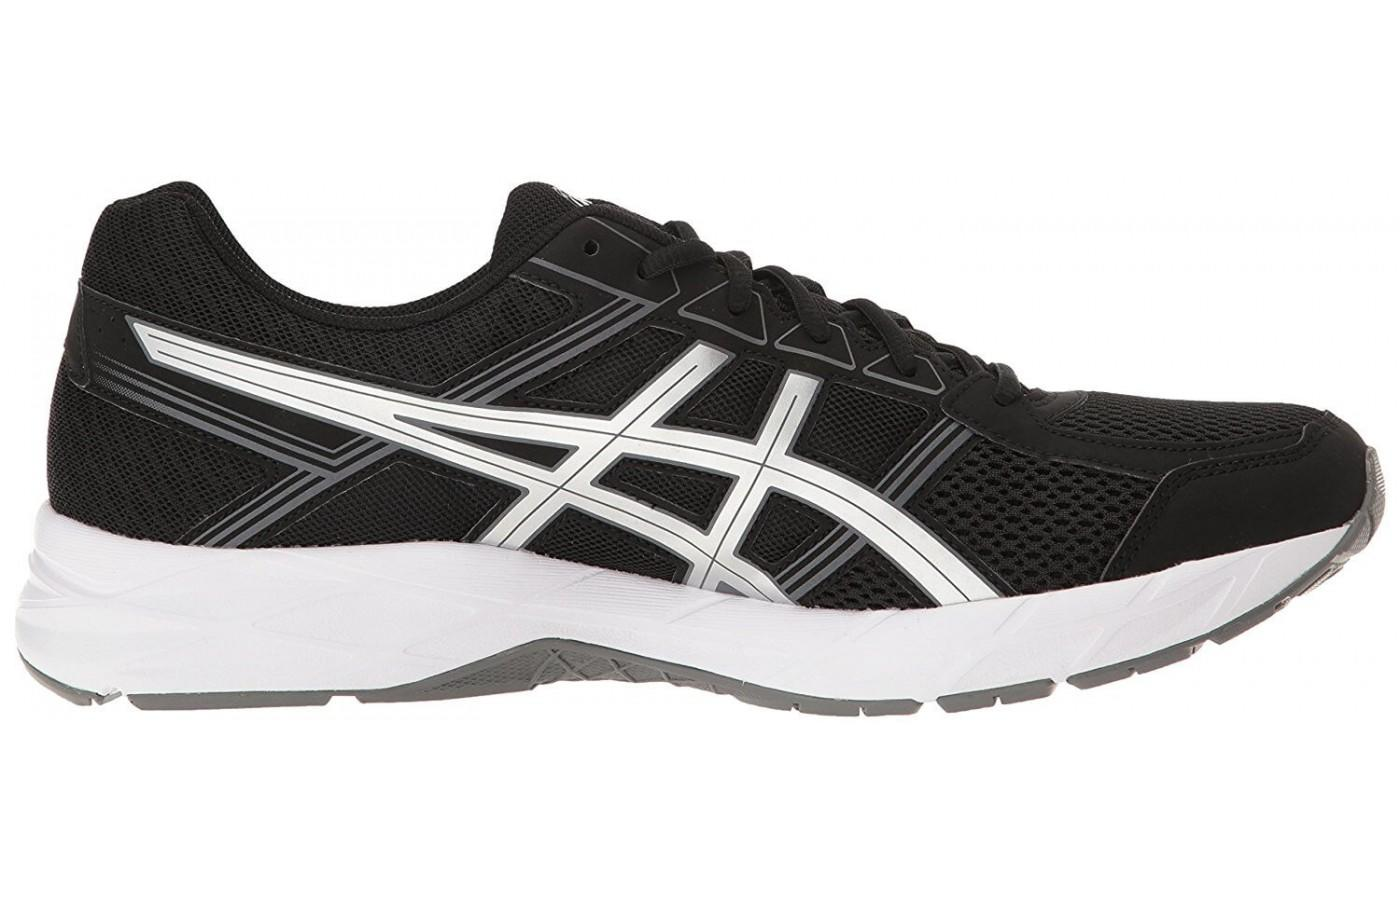 The Gel Contend uses a traditional EVA midsole